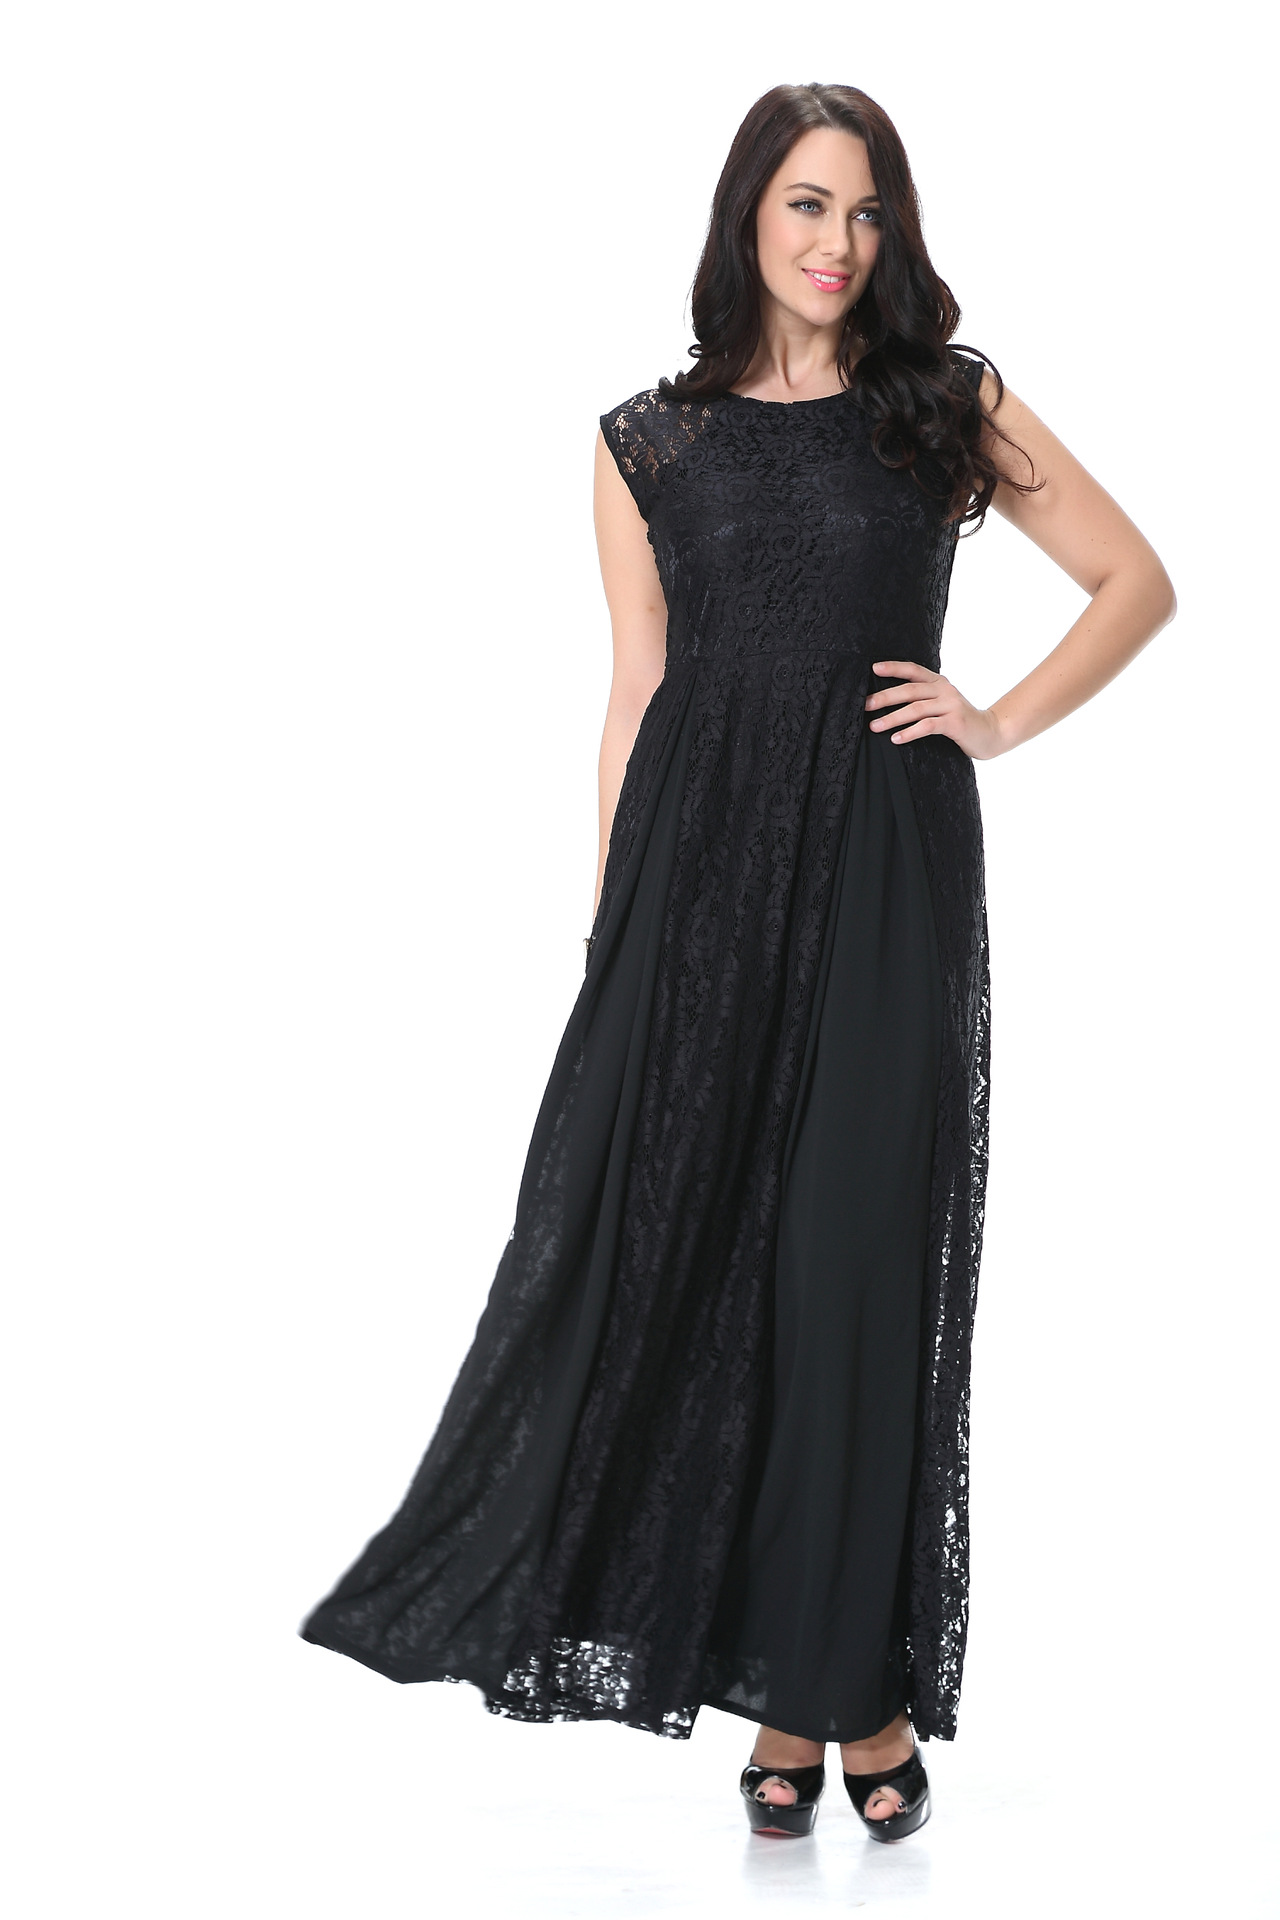 Medium Of Maternity Formal Dresses